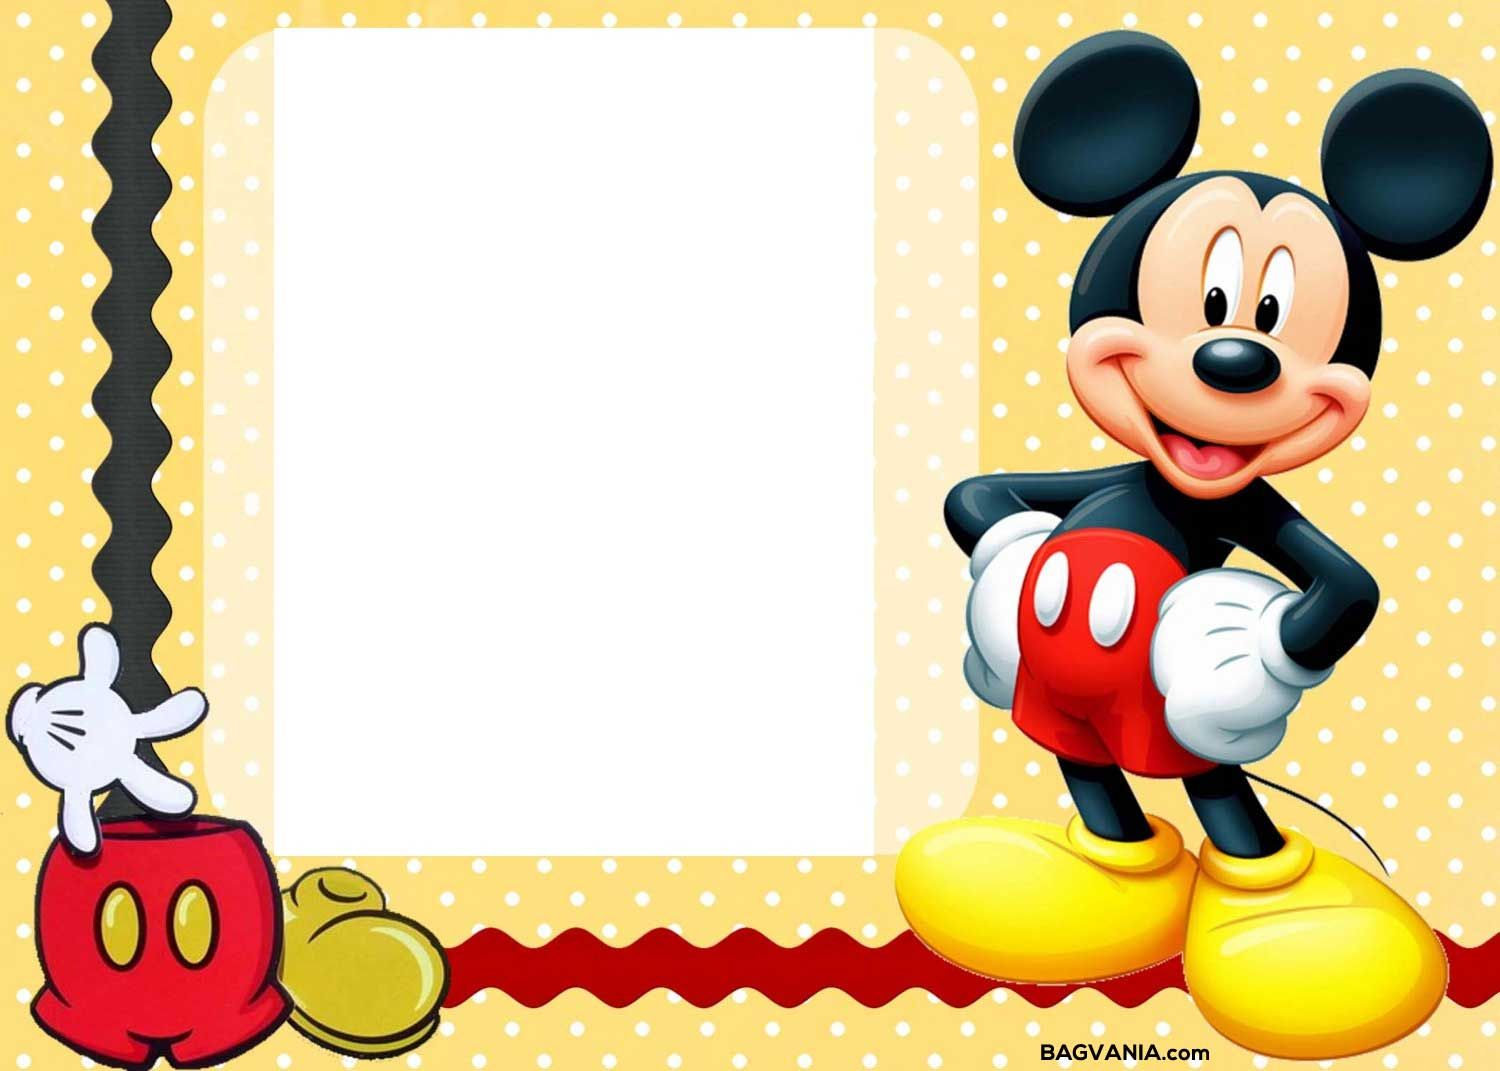 Cool Free Printable Mickey Mouse Birthday Invitations | FREE ...